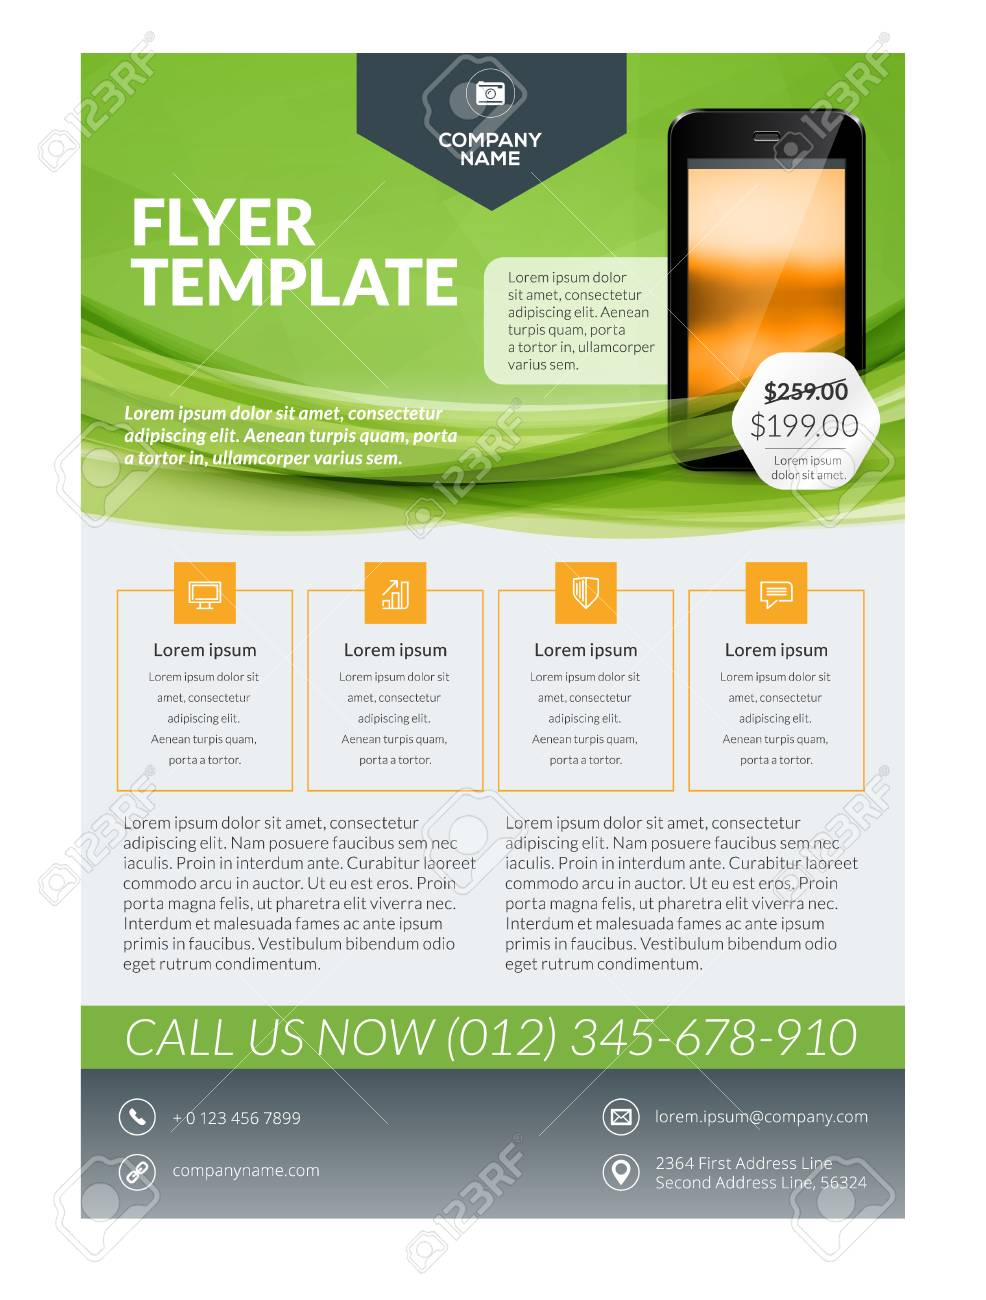 vector business flyer design template for mobile application